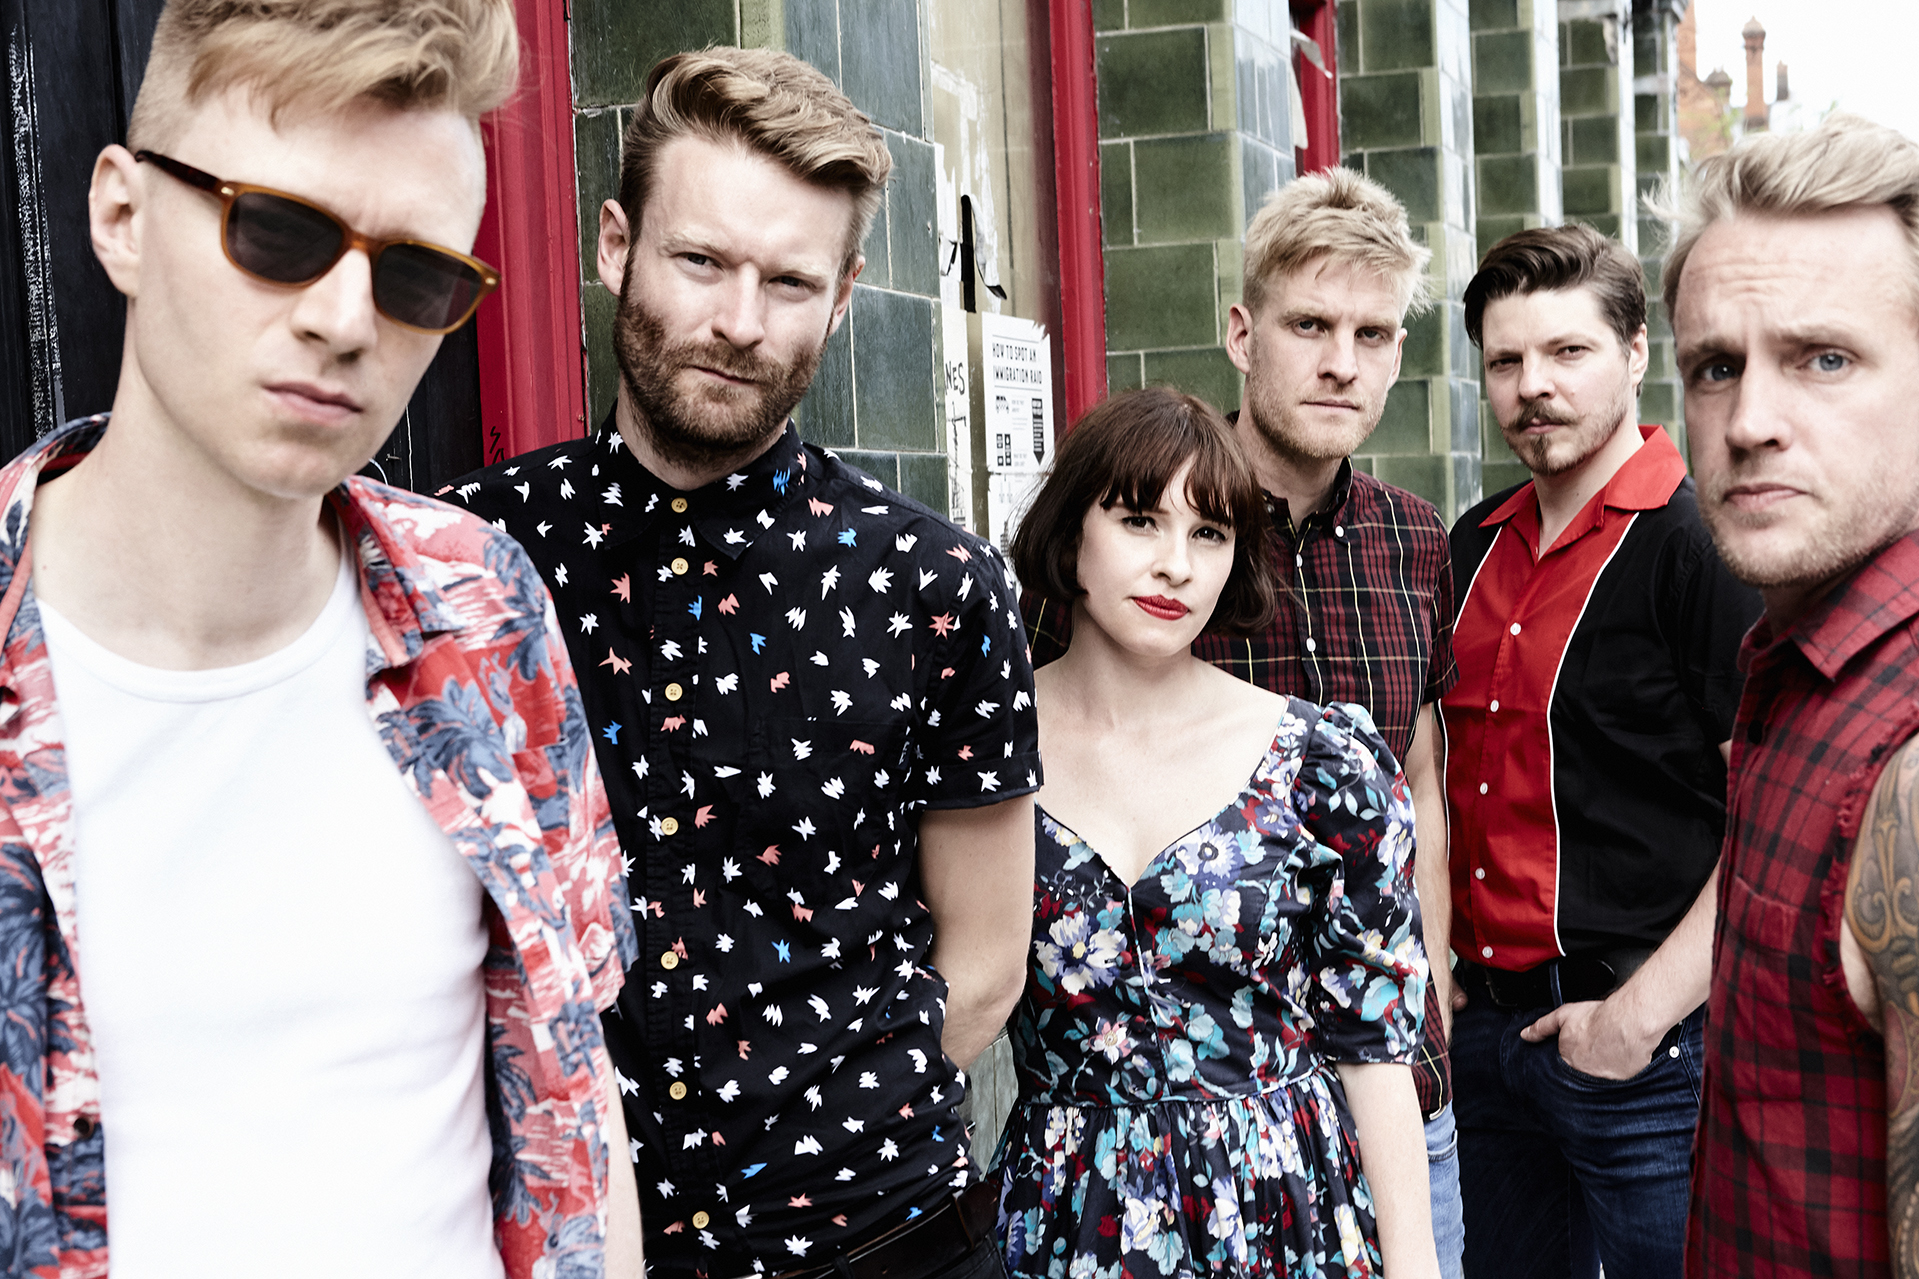 Skinny Lister - Press shot 5 - (David Edwards).jpg